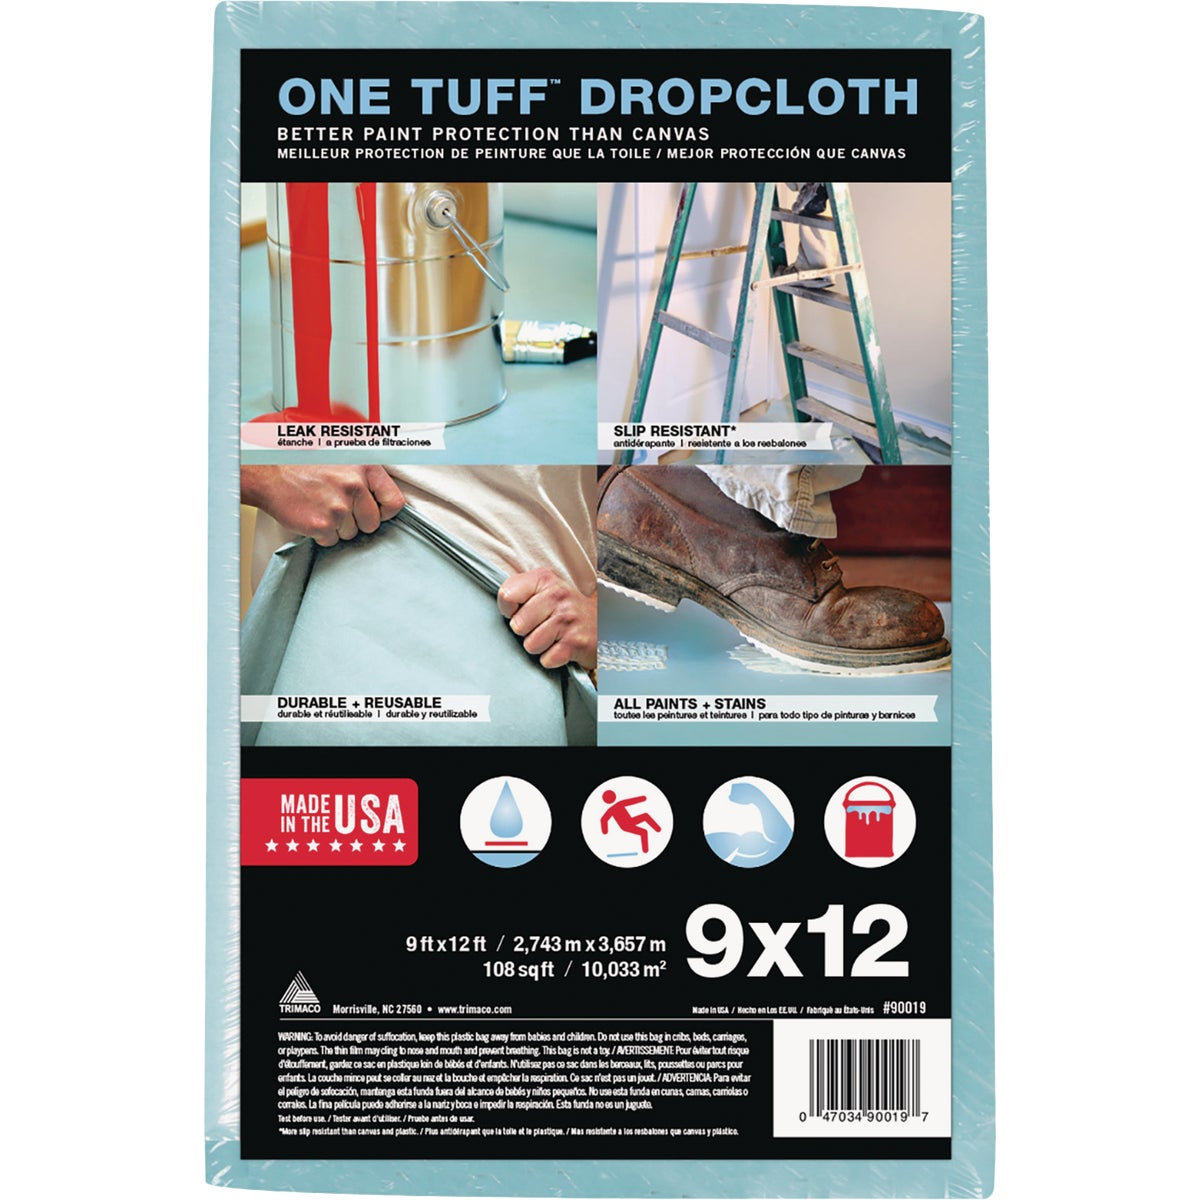 9X12 ONE TUFF DROPCLOTH